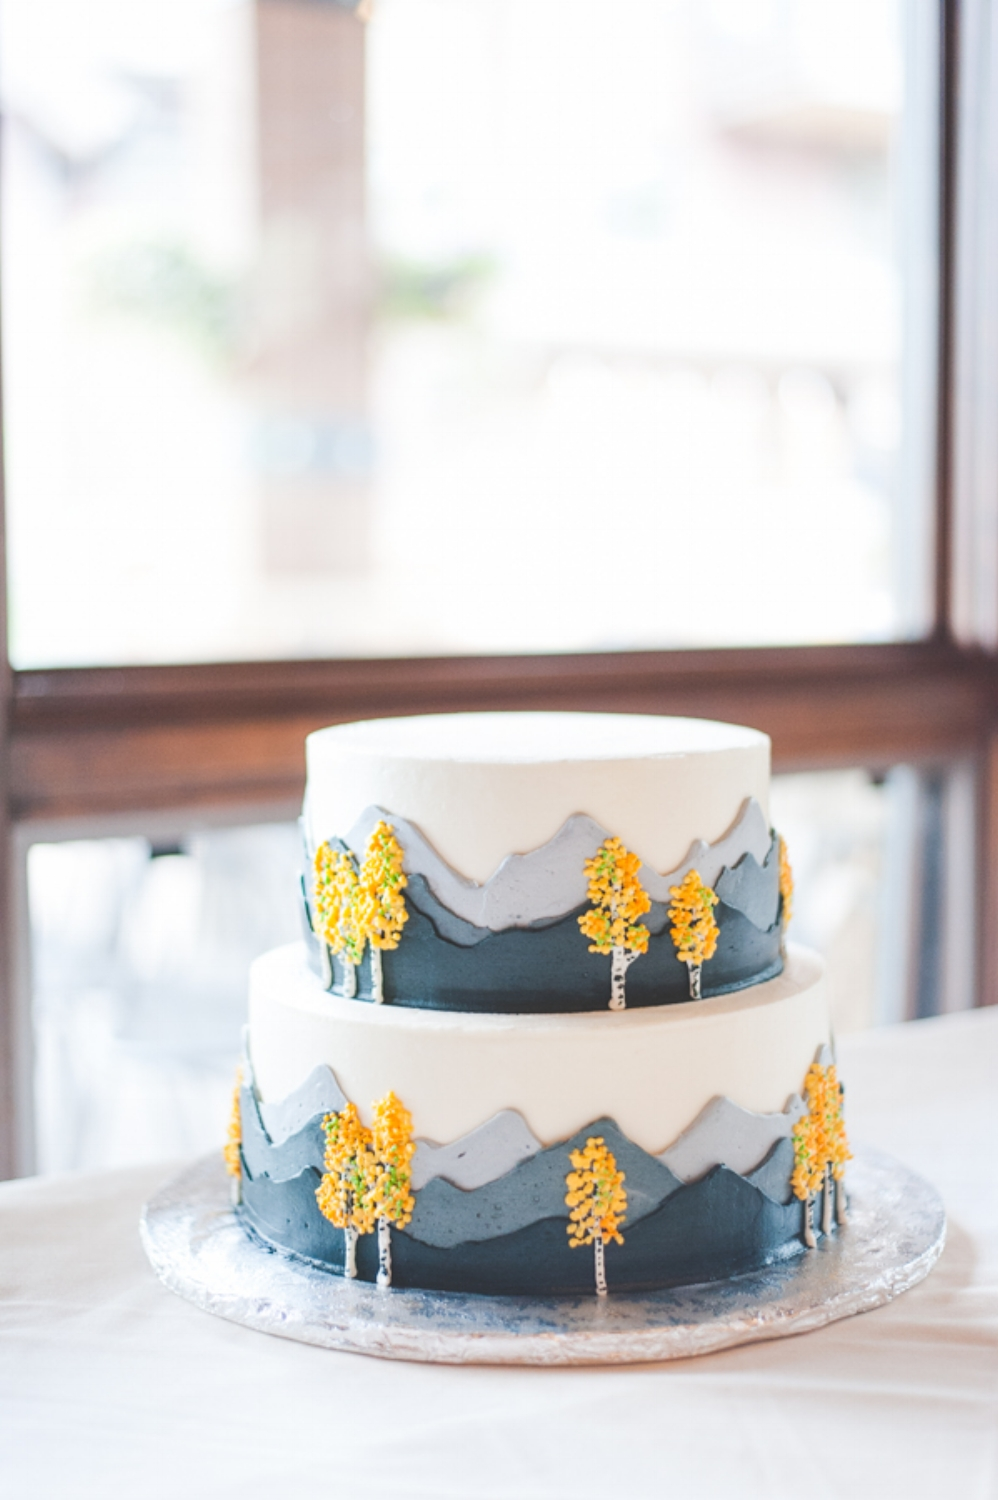 beautiful details on a simple cake for a Breckenridge mountain wedding, complete with yellow aspen leaves and mountain landscapes